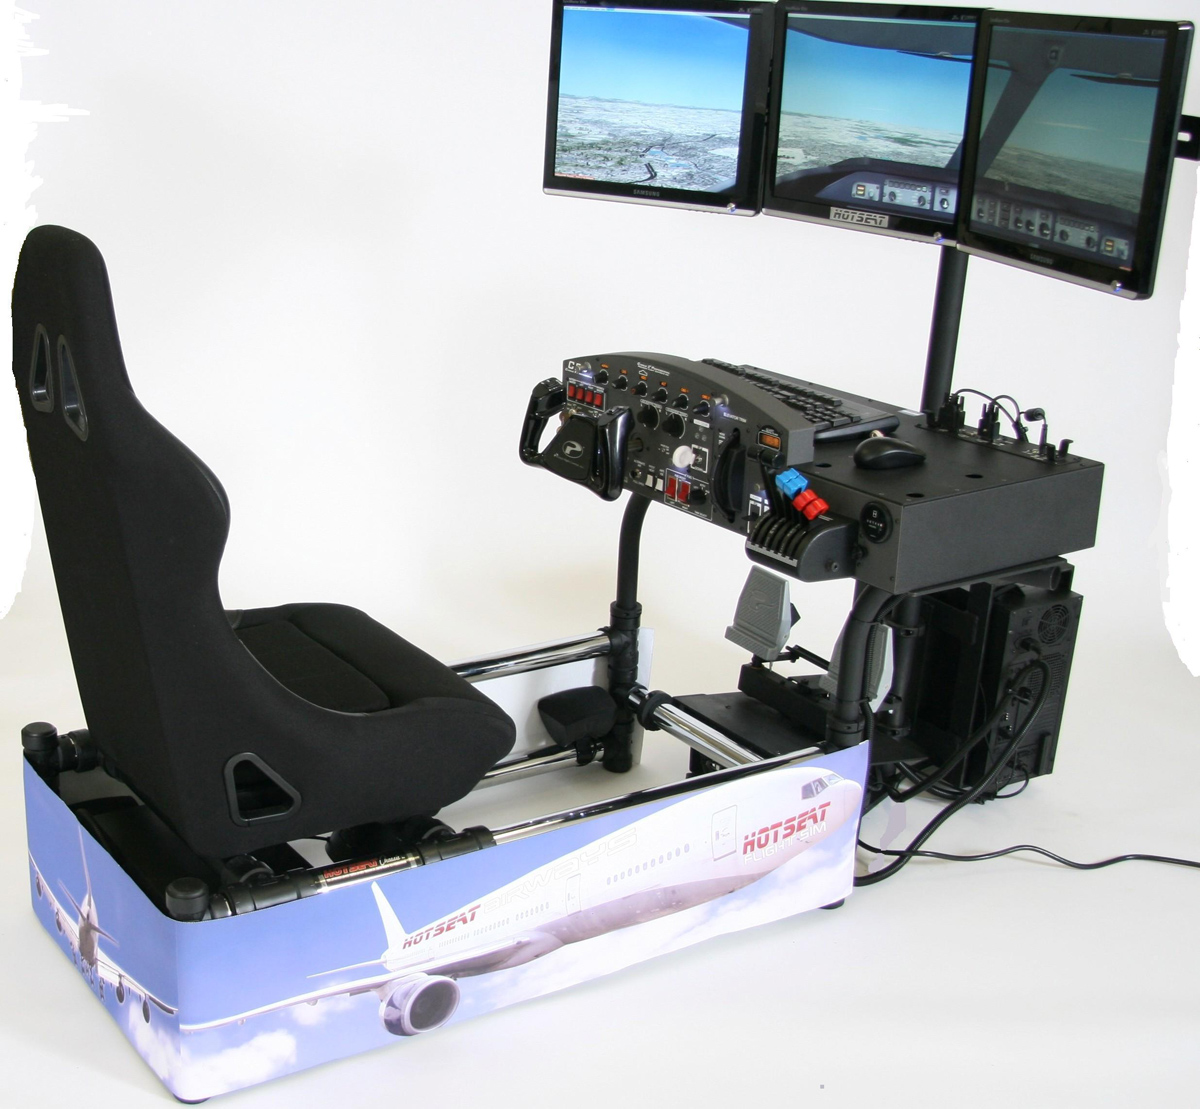 helicopter simulator online free play with Control System Airplane Simulator Flight on Xbox 360 Flight Simulator Games furthermore App flight Simulator Boeing 747 Hawaii Missions QiDBDxxj together with Helicopter simulator 2016 flight simulator online fly wings additionally Plane Games Online Flying Games Free Games likewise FREE AIRPLANE SIMULATOR GAMES.